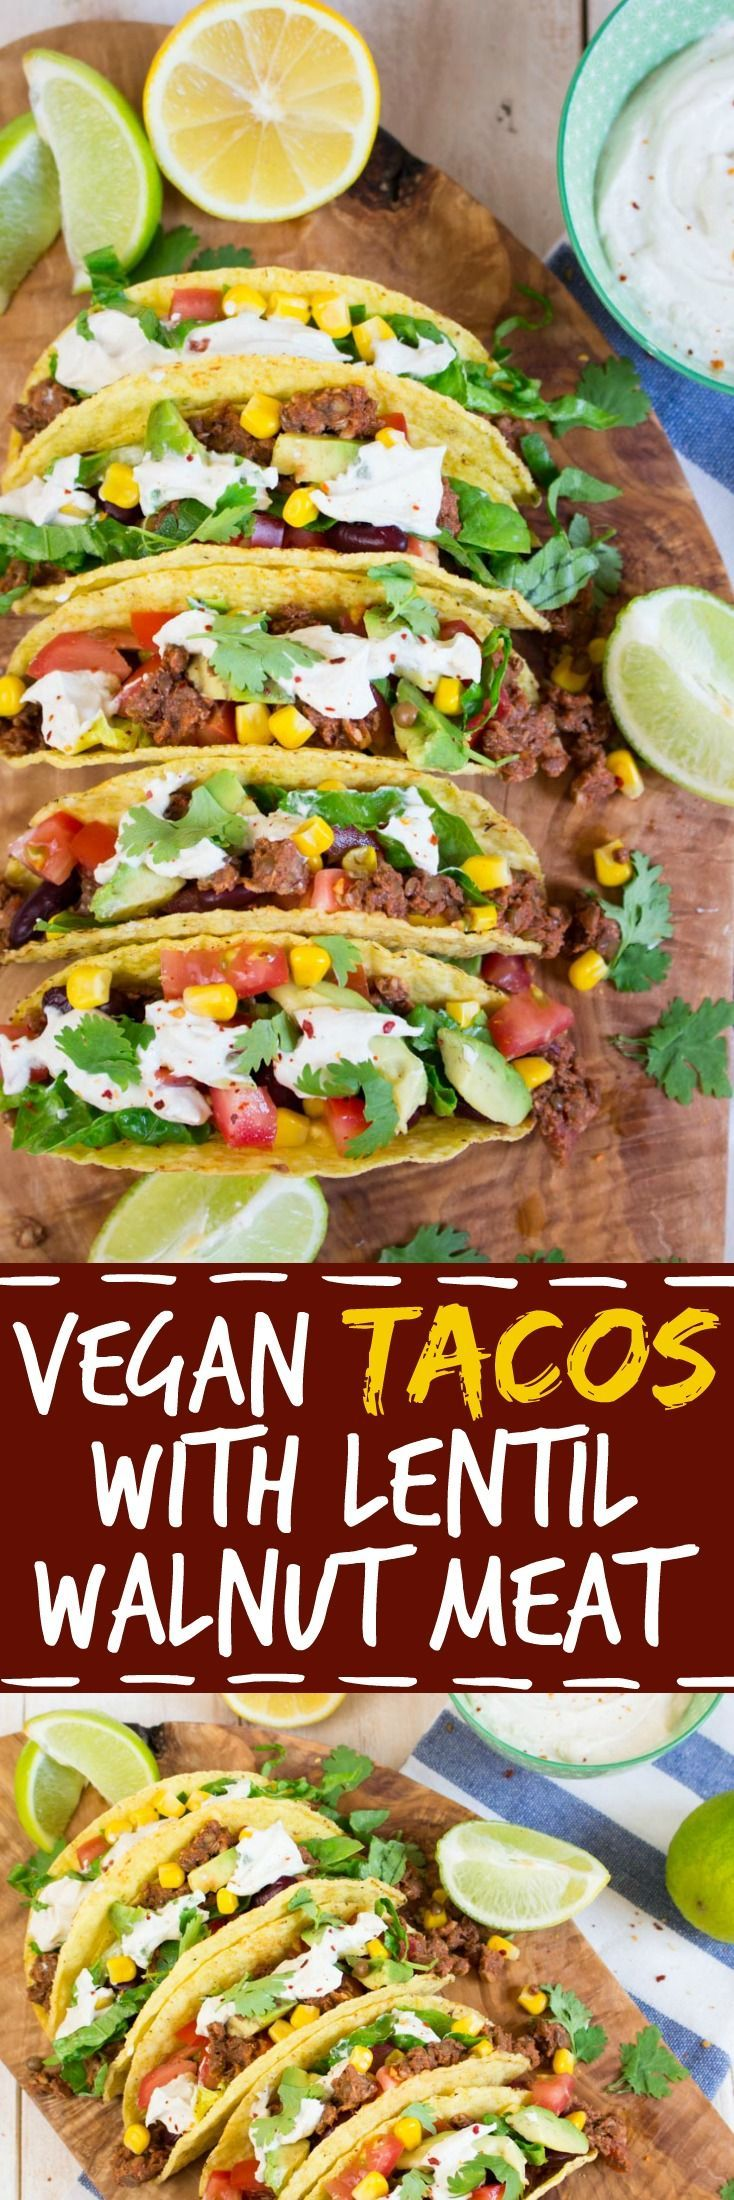 Vegan Tacos with Lentil Walnut Meat and Cashew Sour Cream